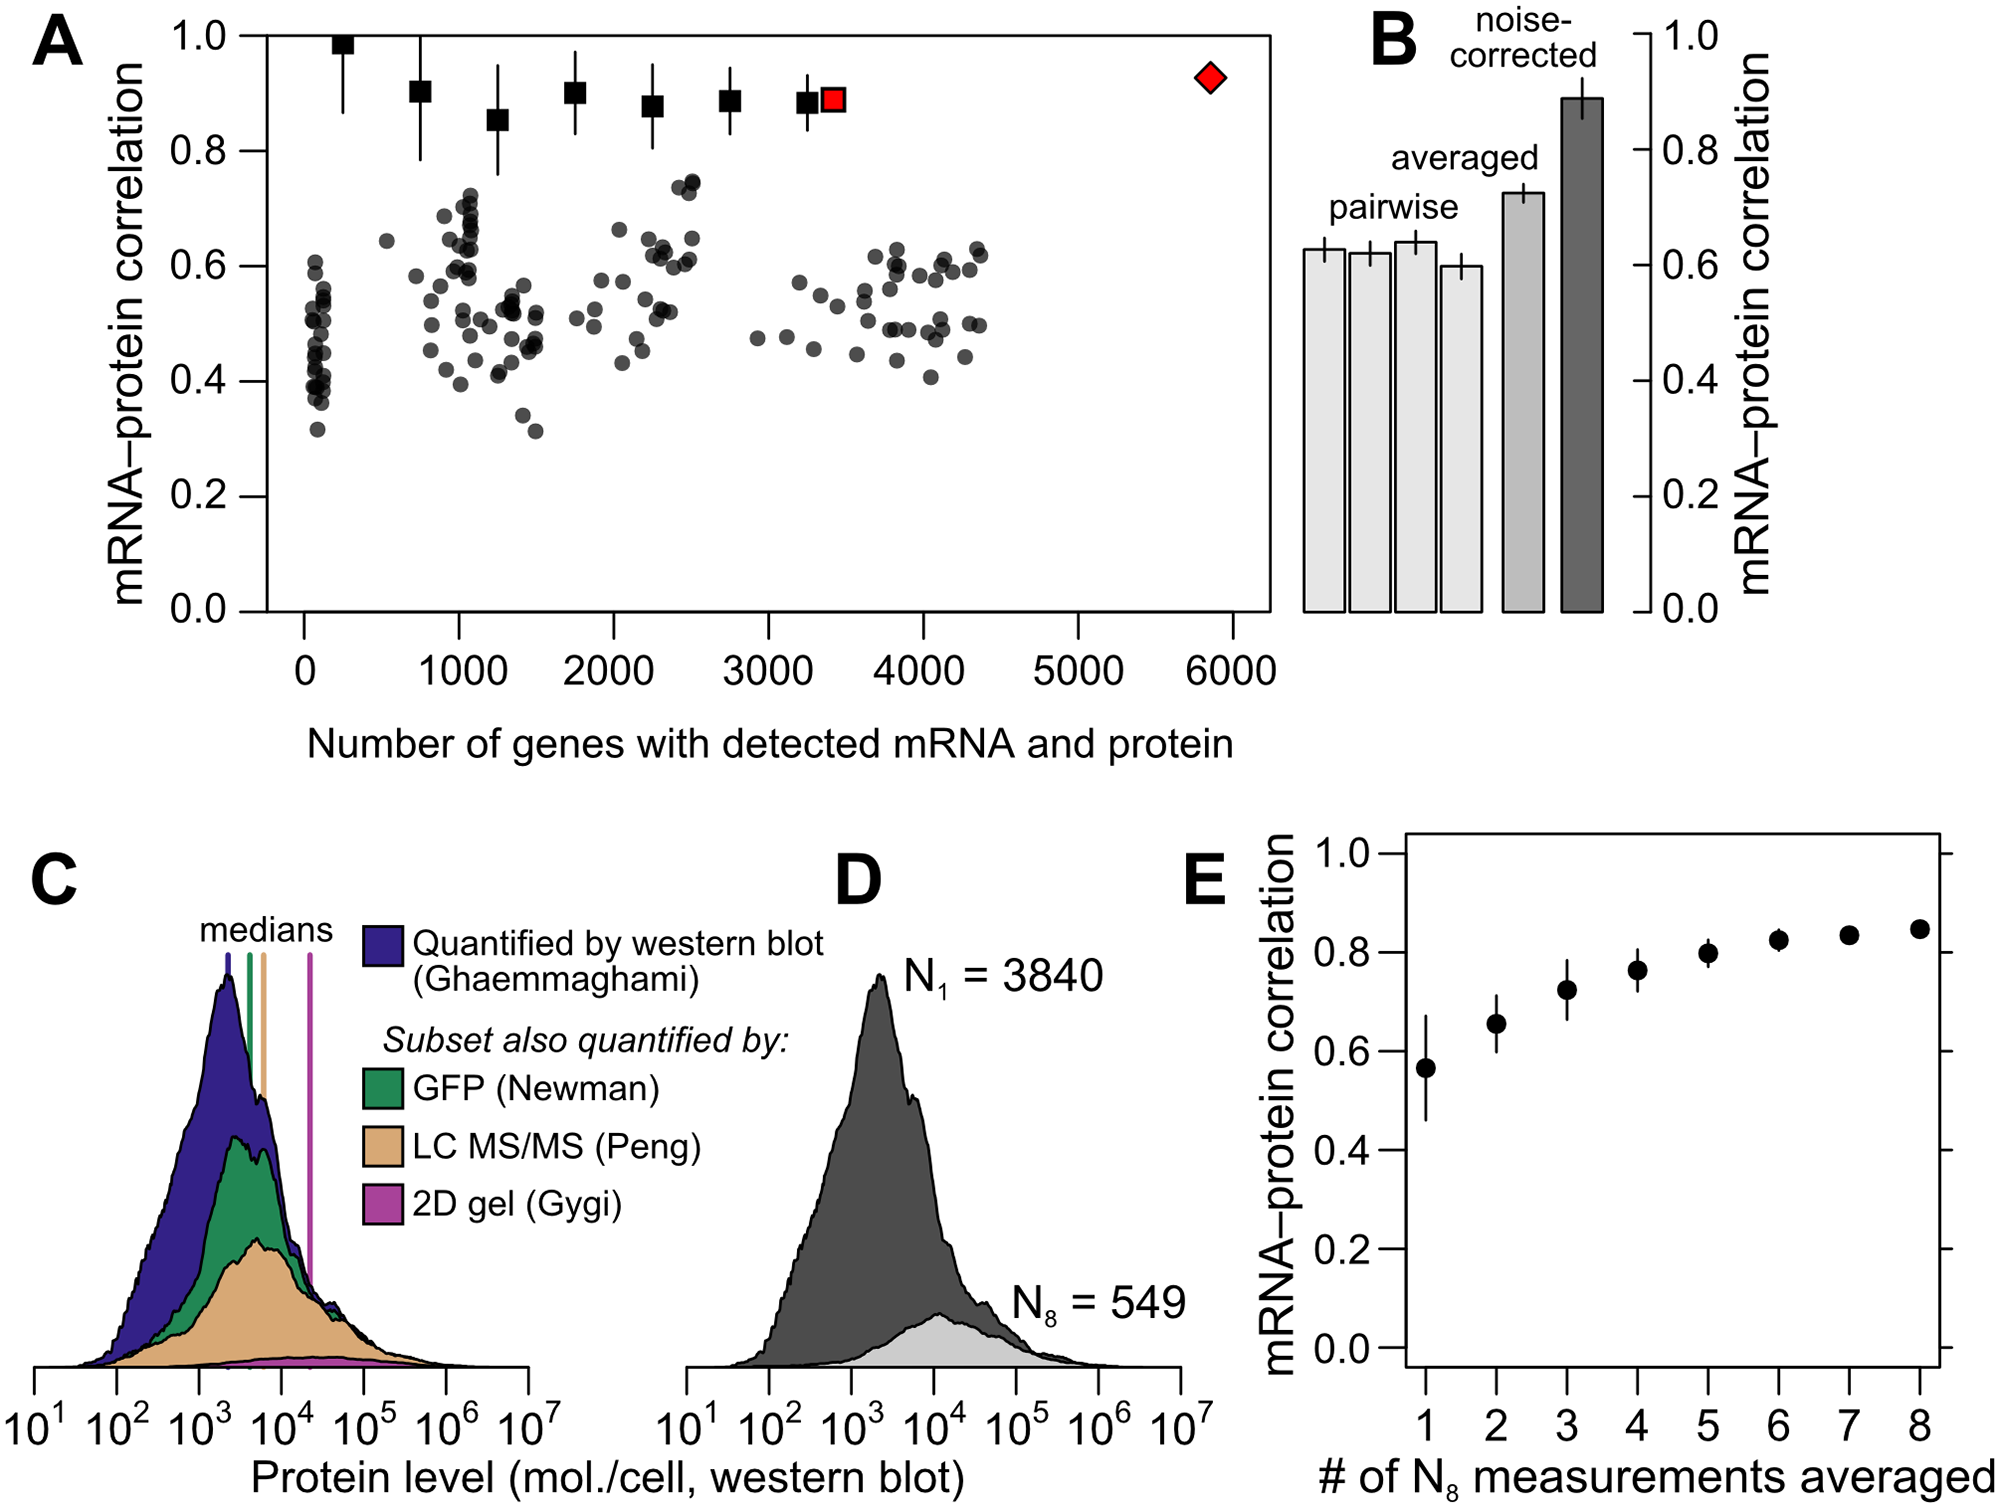 Correlations between mRNA and protein levels vary widely and are systematically reduced by experimental noise.